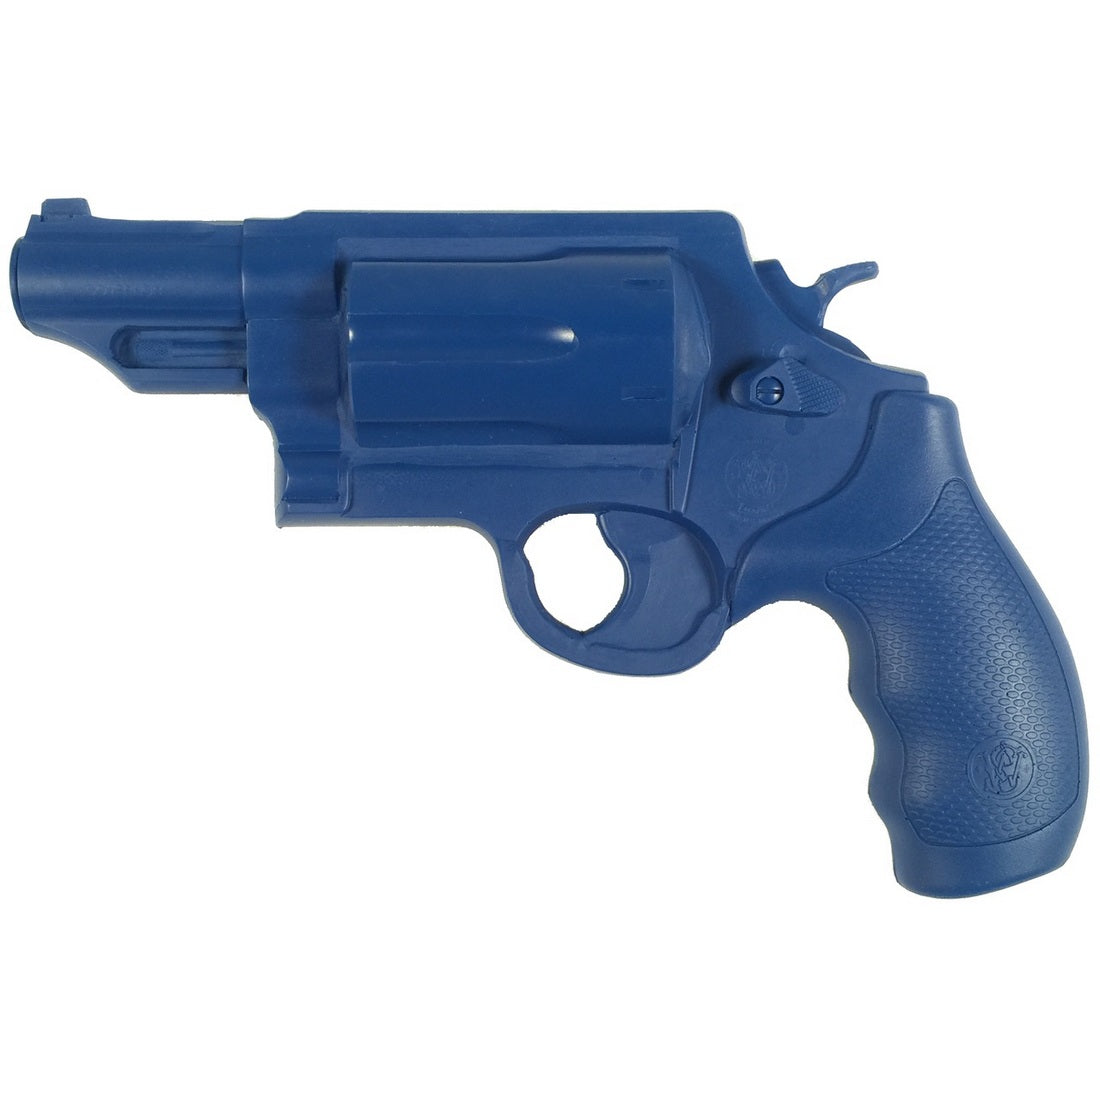 Blueguns FSSWGOV S&W Governor